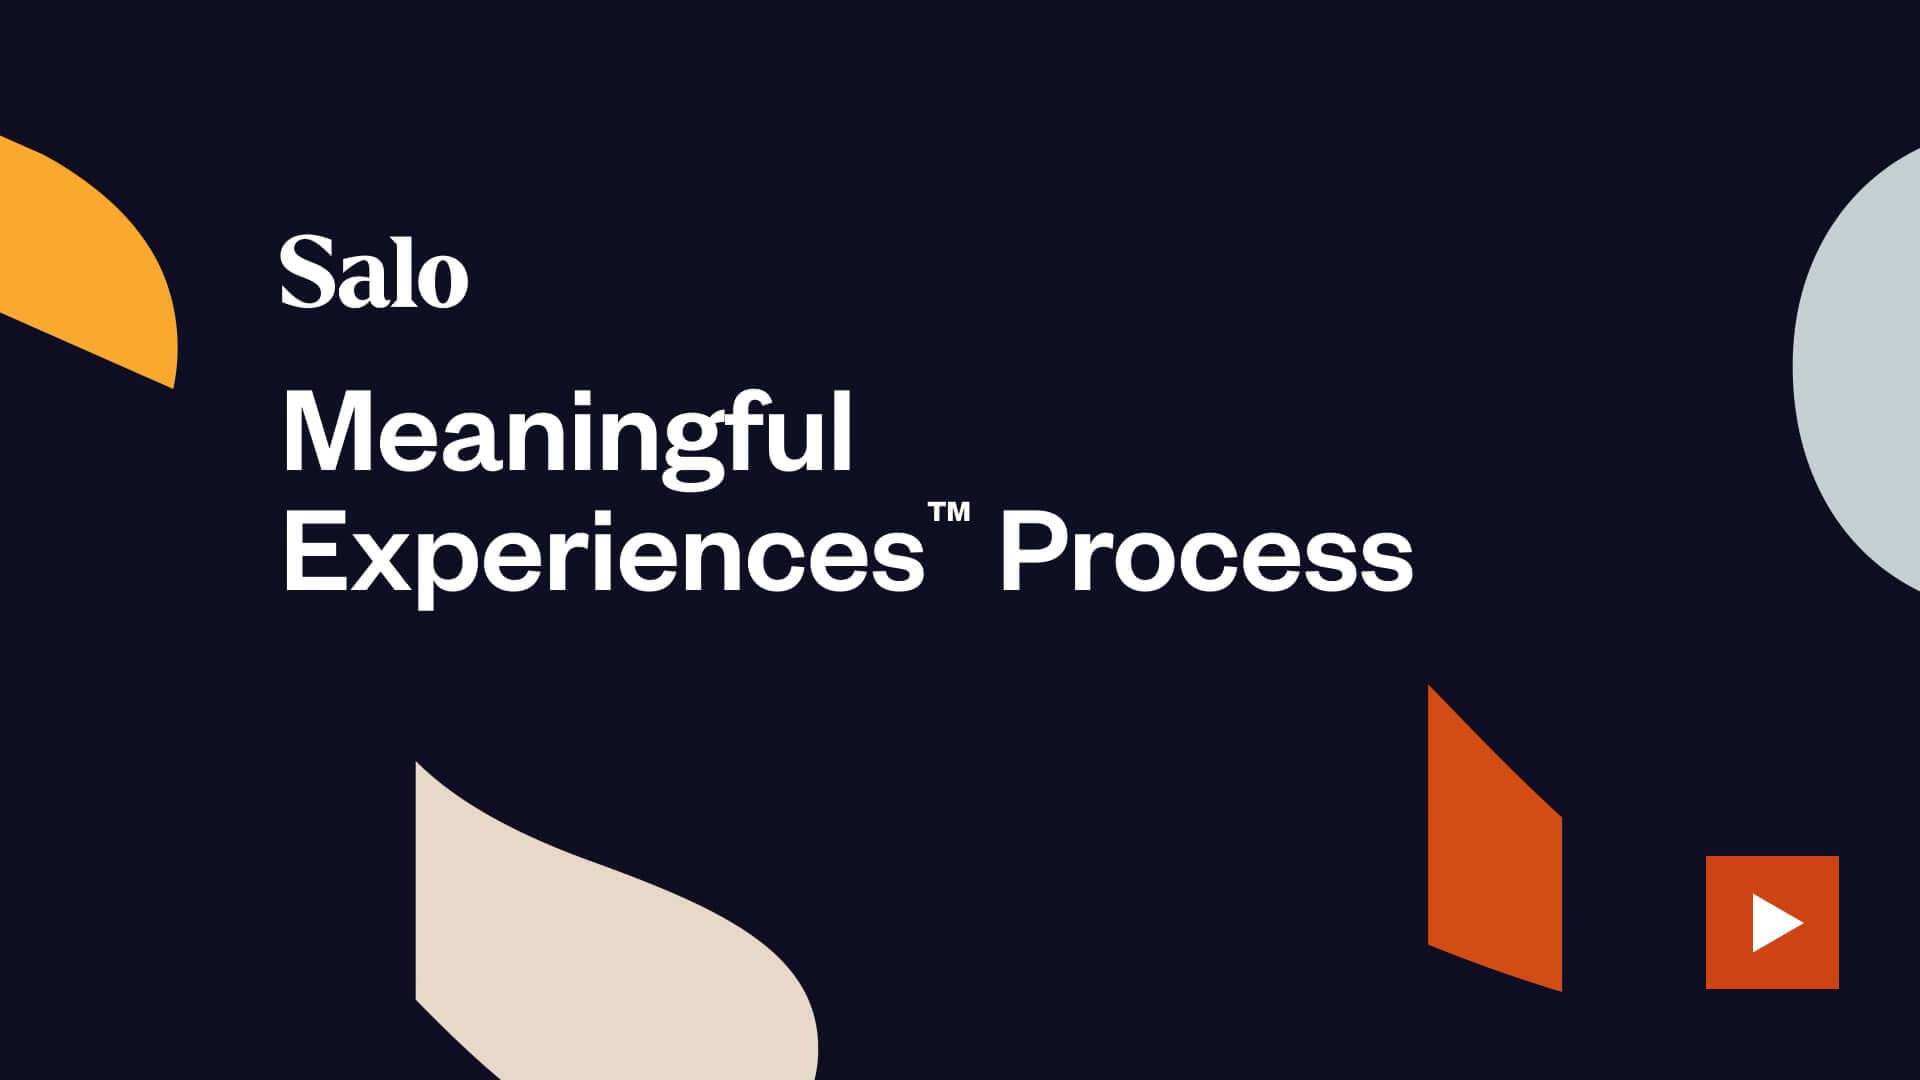 Salo Meaningful Experience videos Process splash screen with orange play button indicating click to play